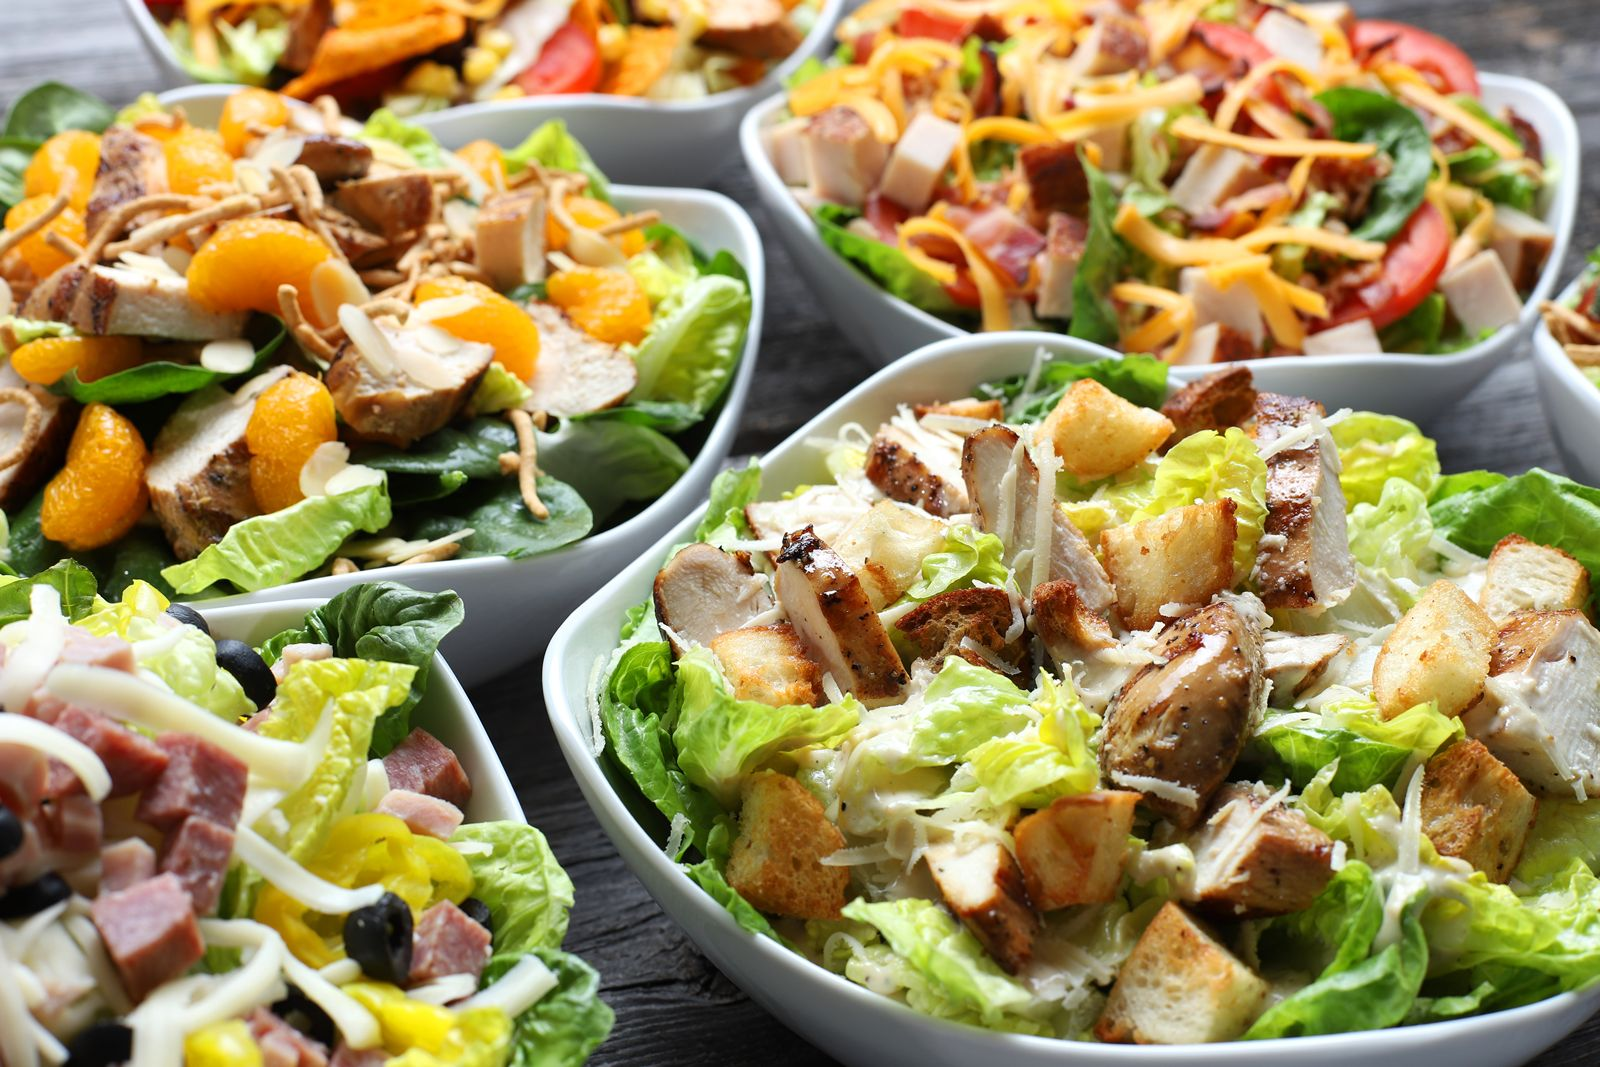 Michigan's The Big Salad Expanding With 3 New Restaurants